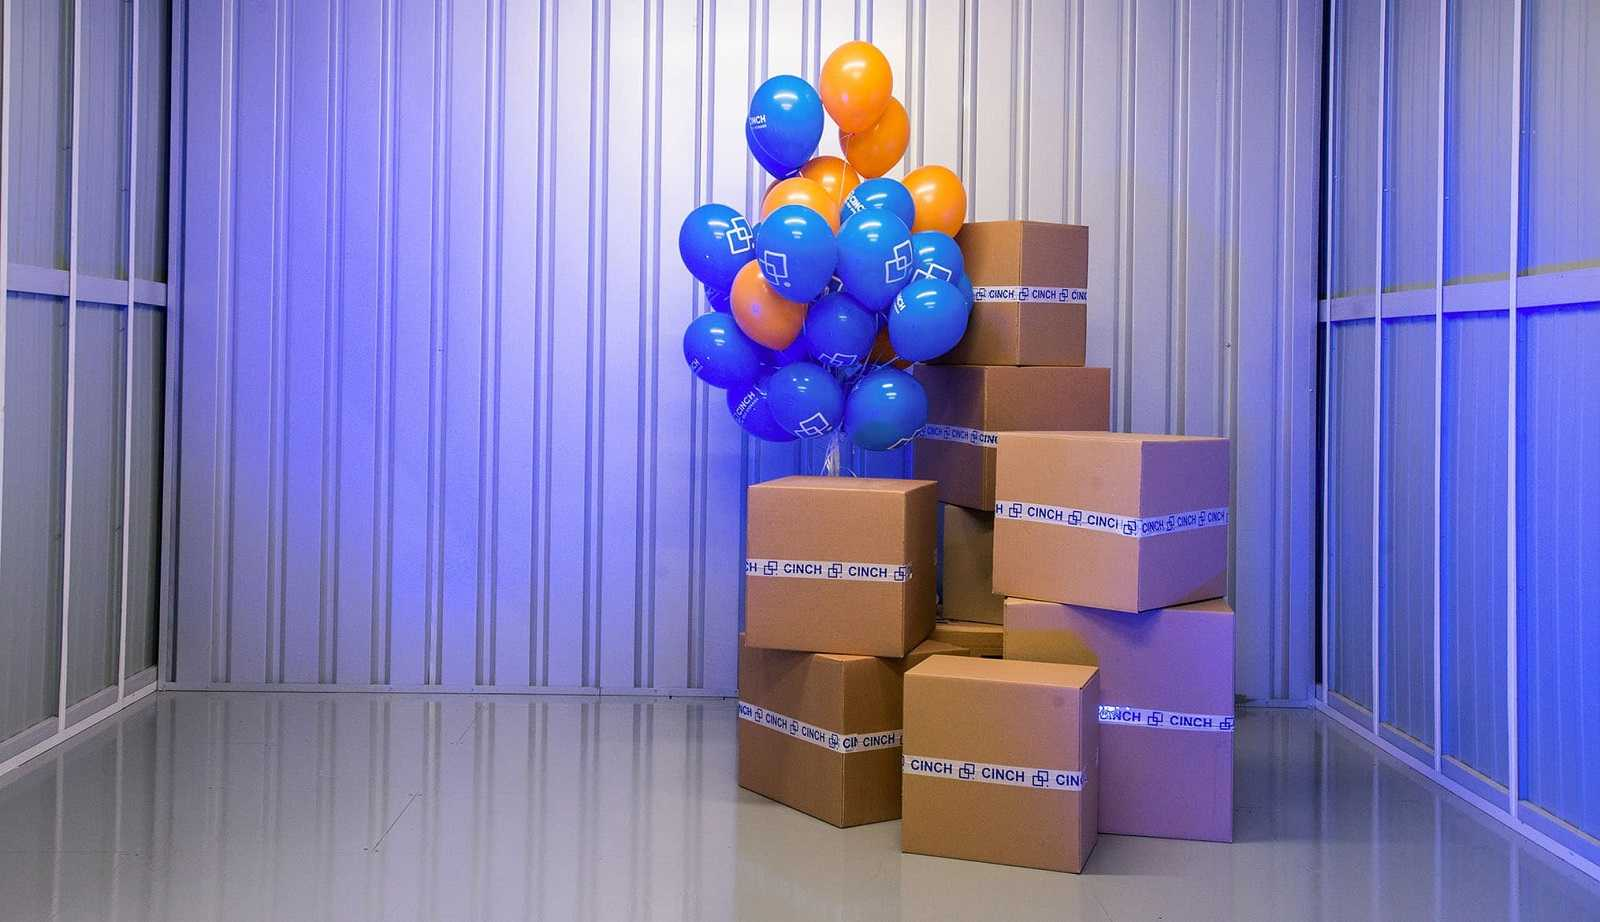 A bunch of balloons tied next to a stack of cardboard boxes inside a storage unit